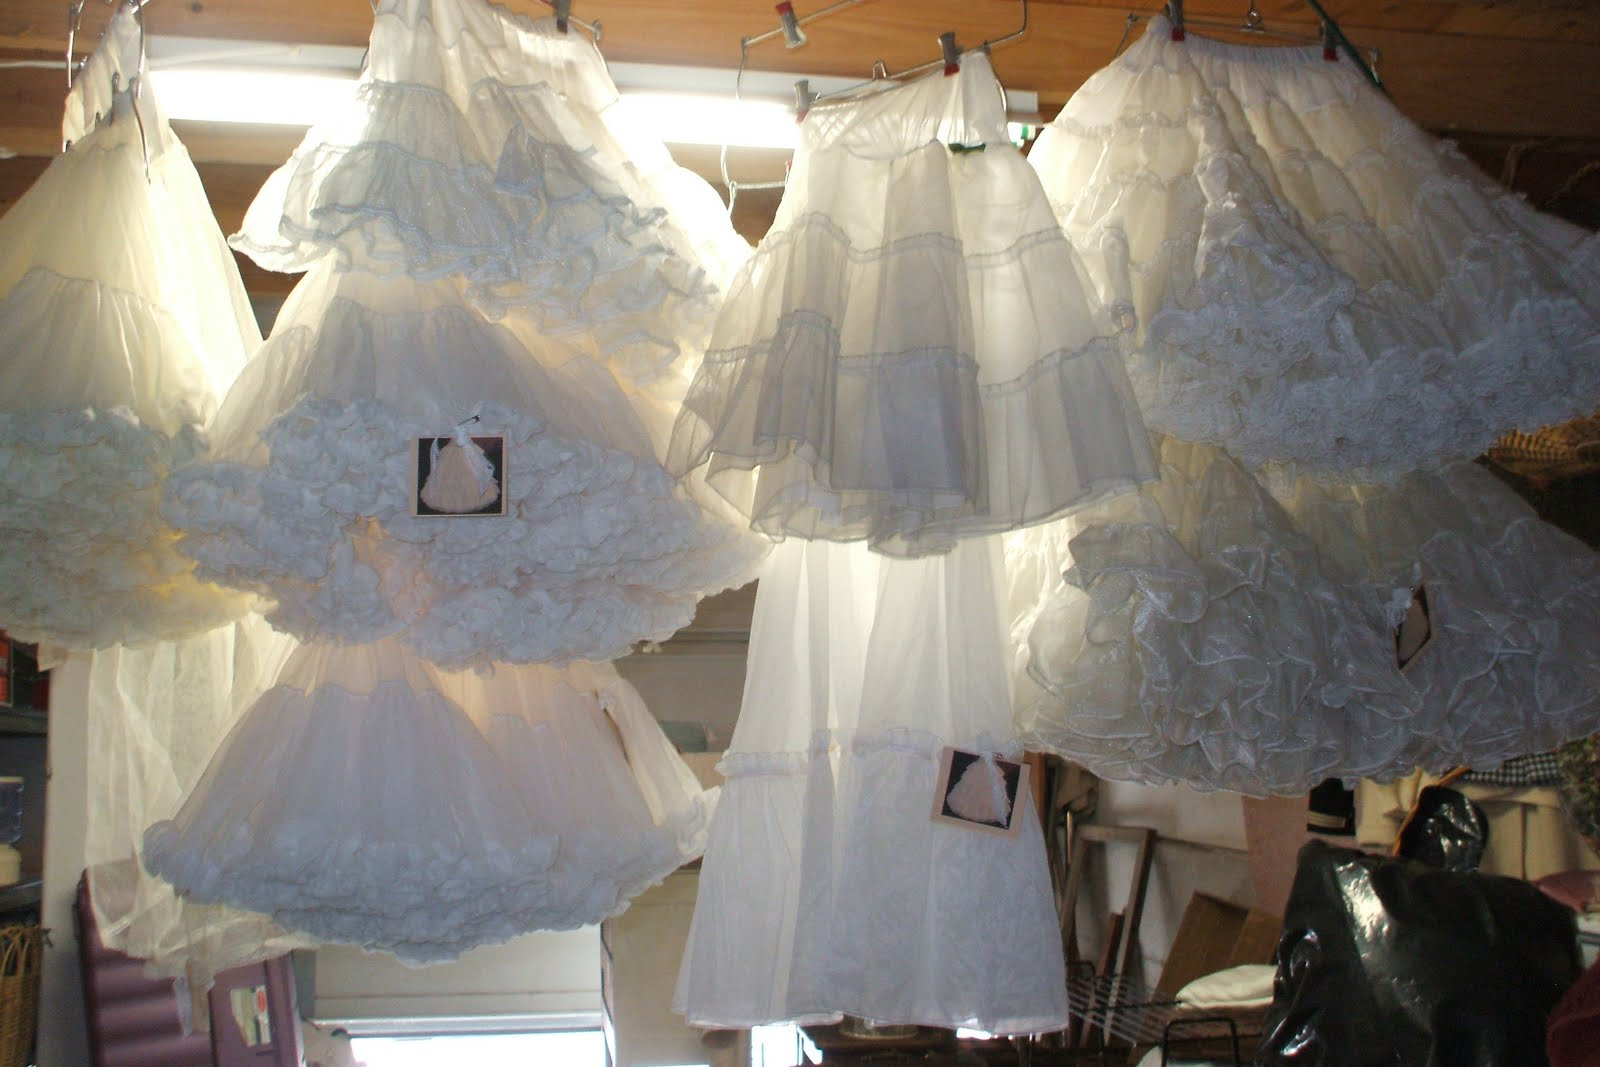 Clouds of Crinolines! So glad you'll be with us again, Voondi!